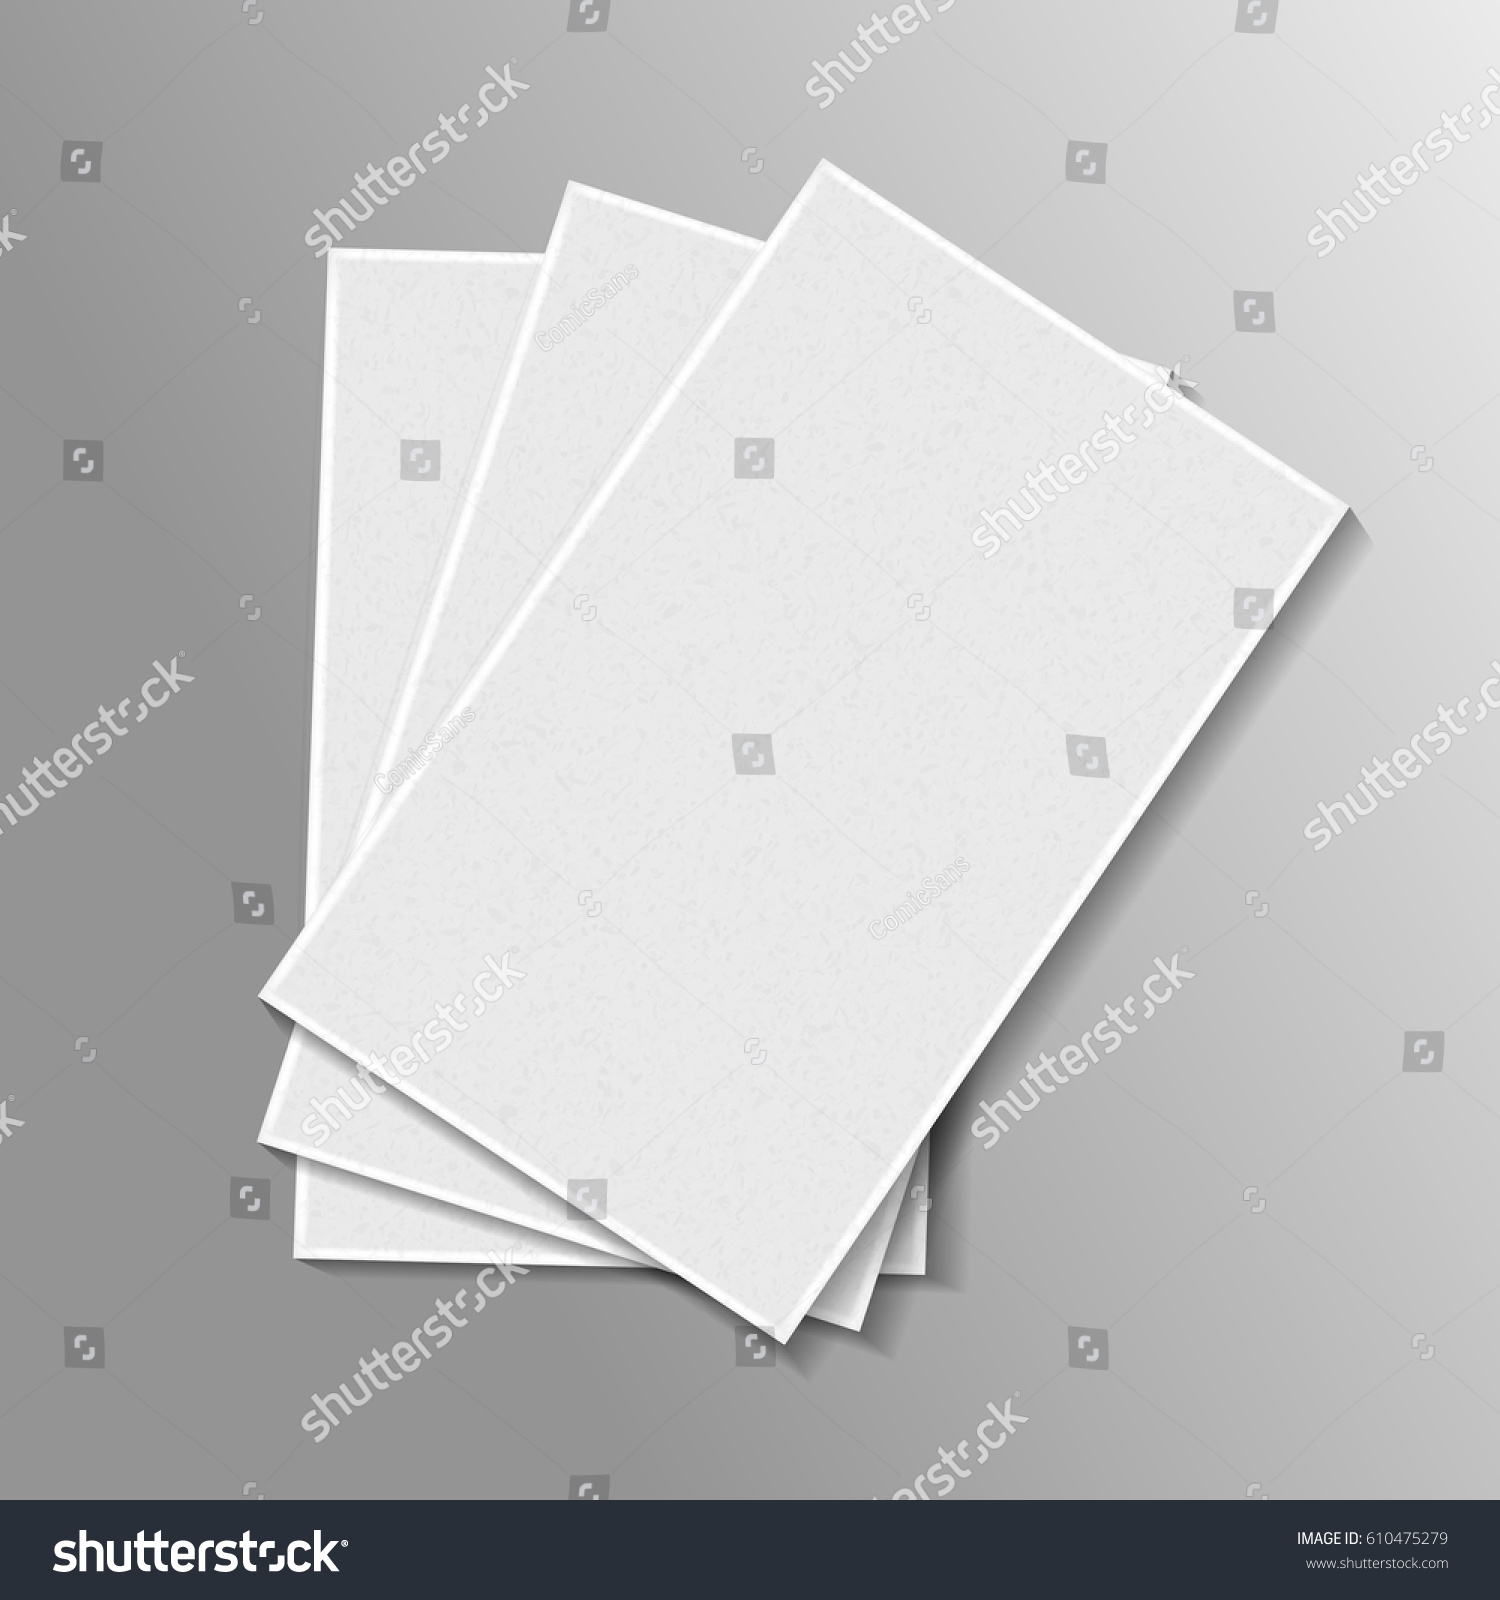 Vector Realistic Isolated Pile Paper On Stock Vector HD (Royalty ...